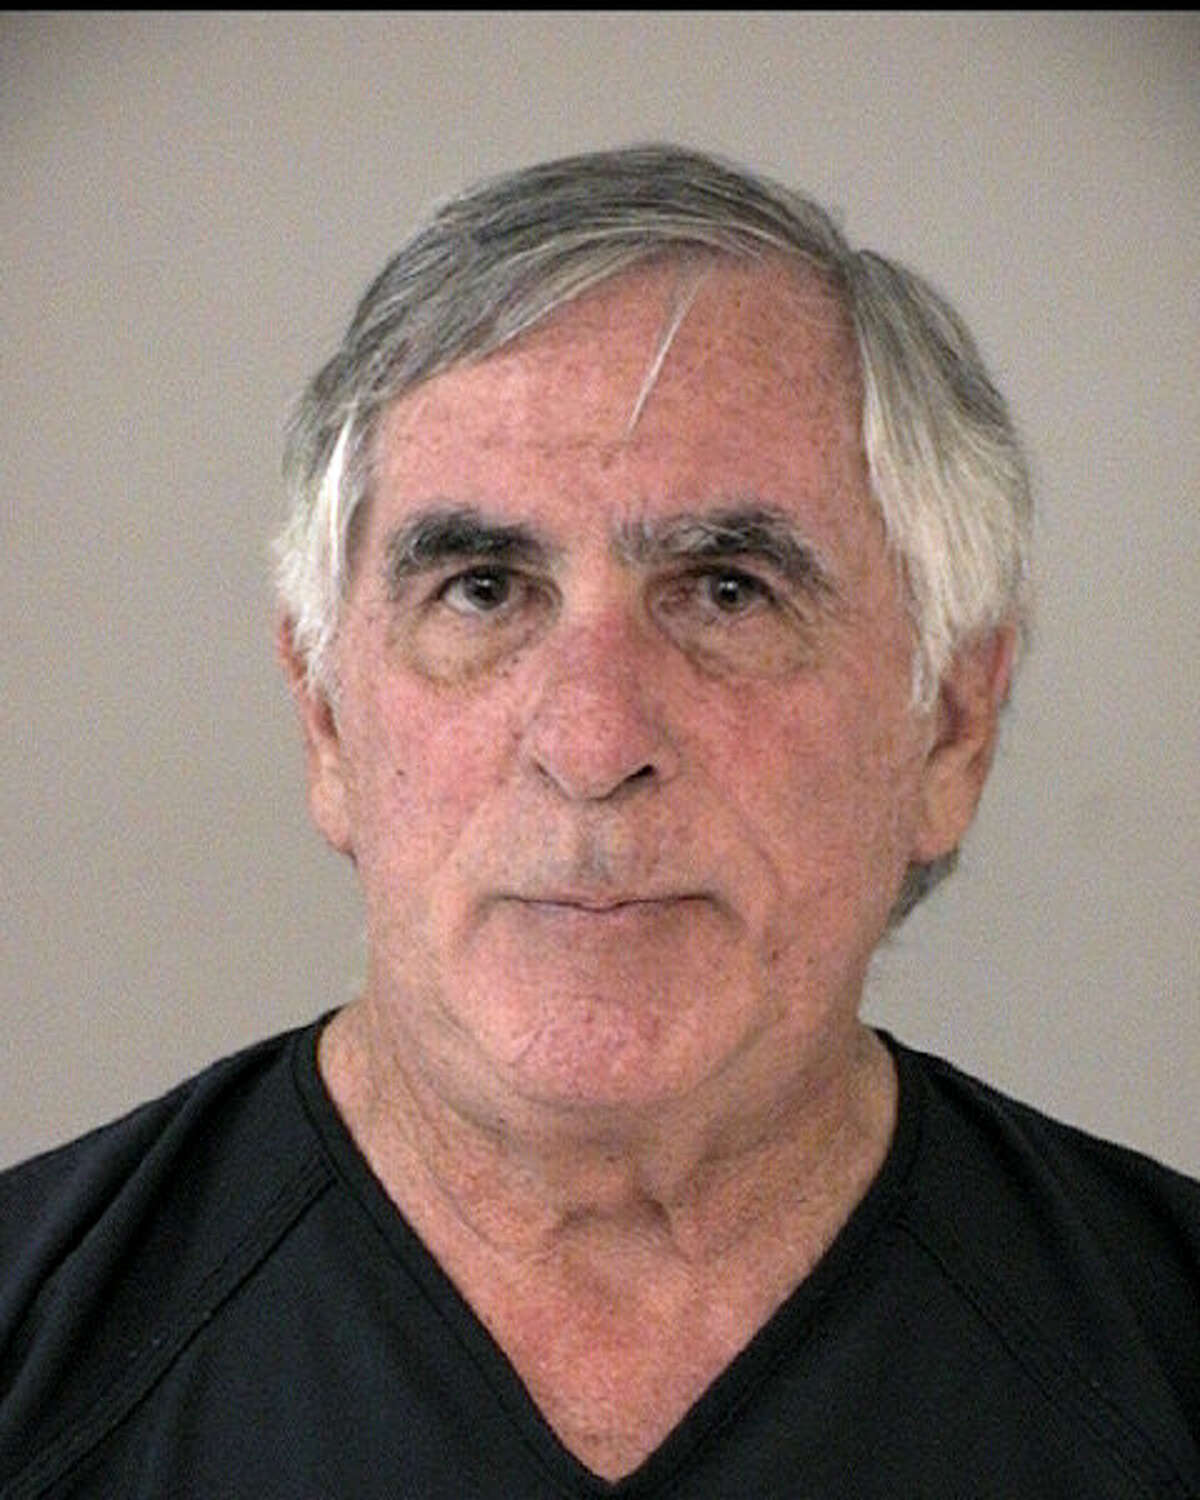 John L. Eells, 70, is accused of aggravated assault on a police officer and driving while intoxicated in Fort Bend County.